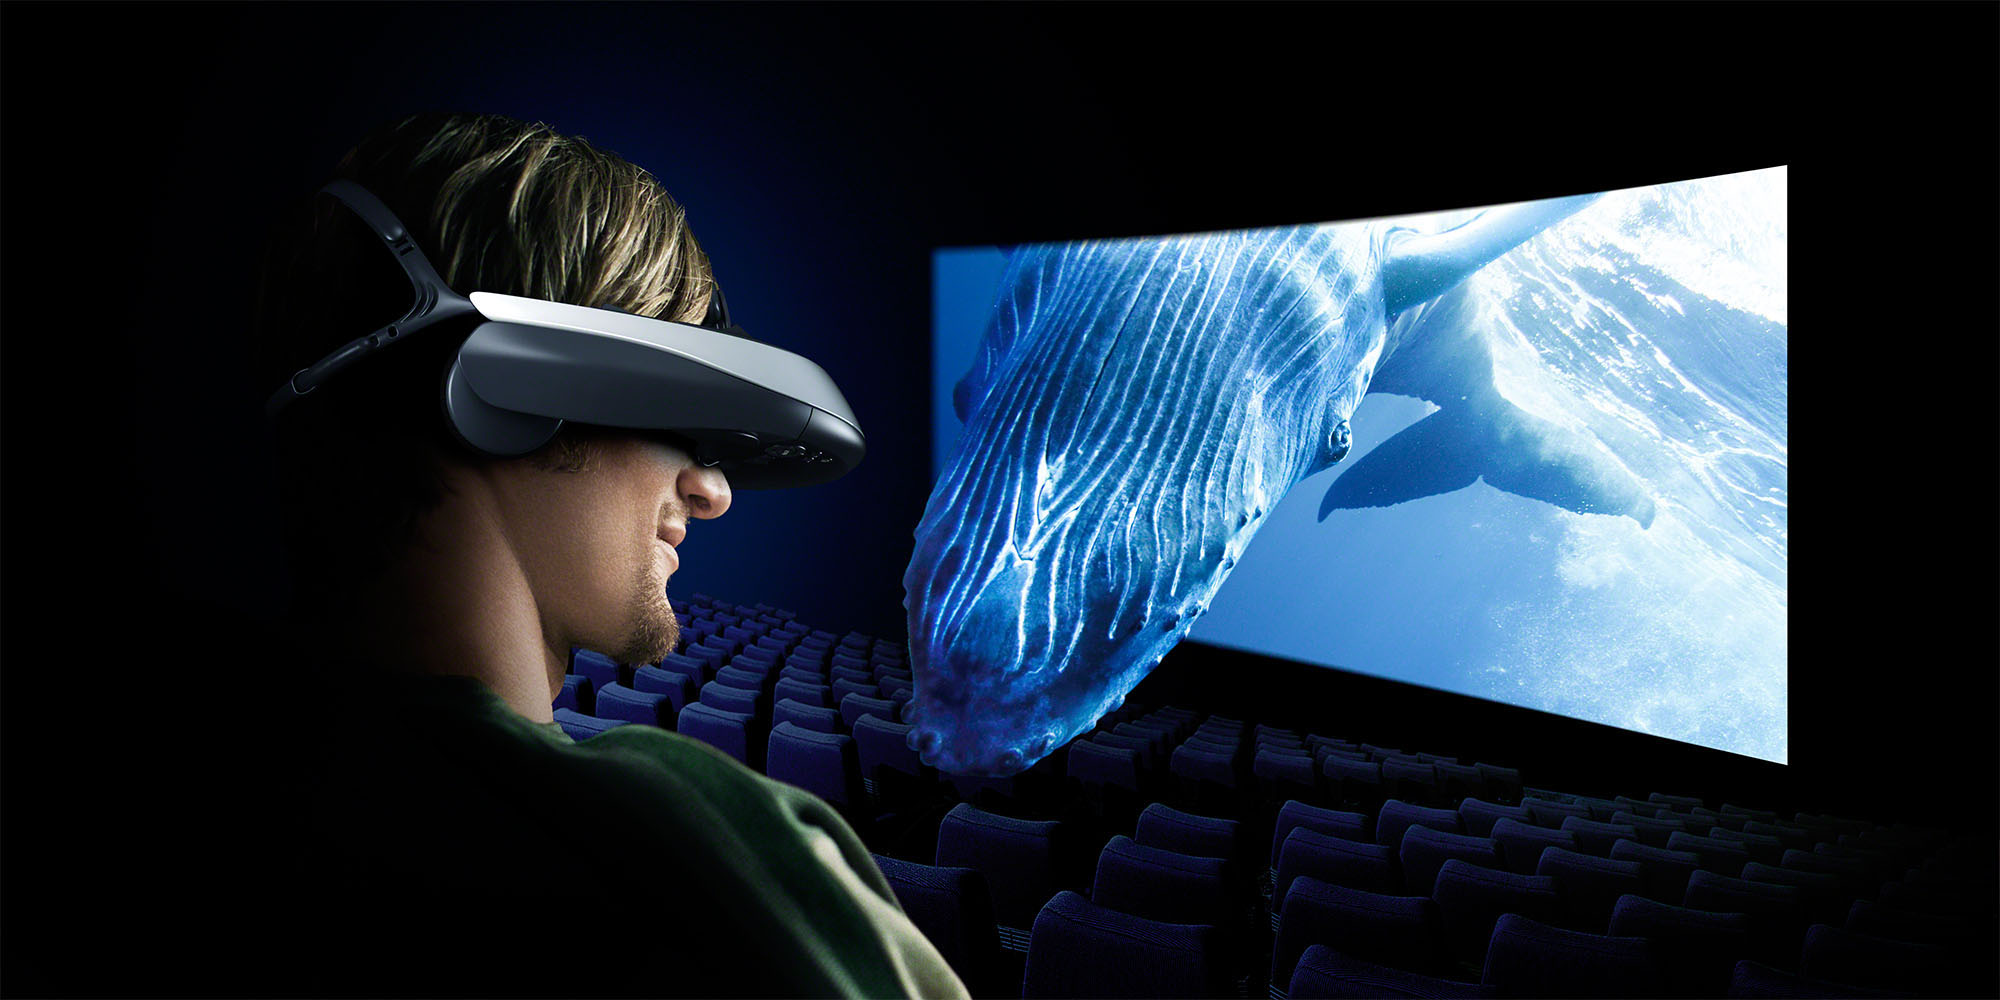 SONY OF CANADA LTD. - World's First 3D Head Mounted Display